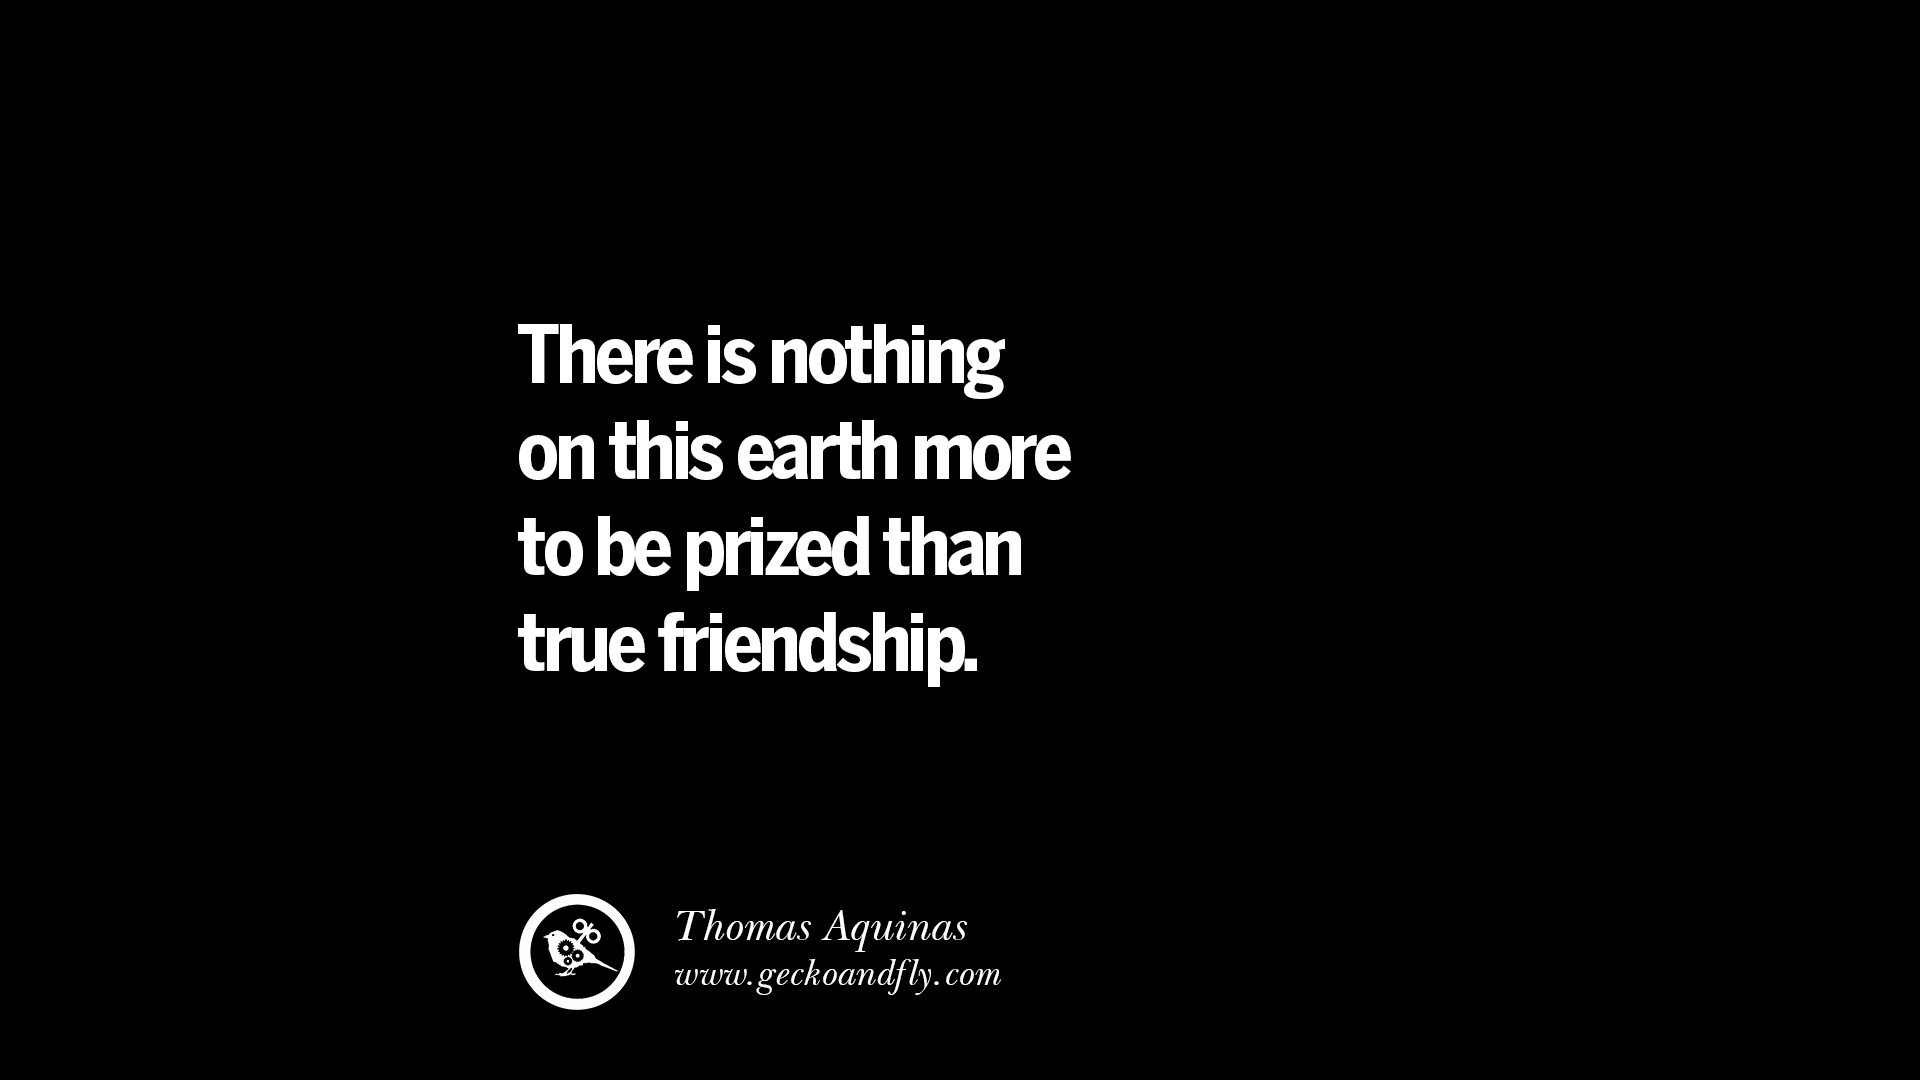 Friendship Quotes And Love Quotes : ... Photos - Life Quotes Friendship Quotes Love Quotes Motivational Quotes